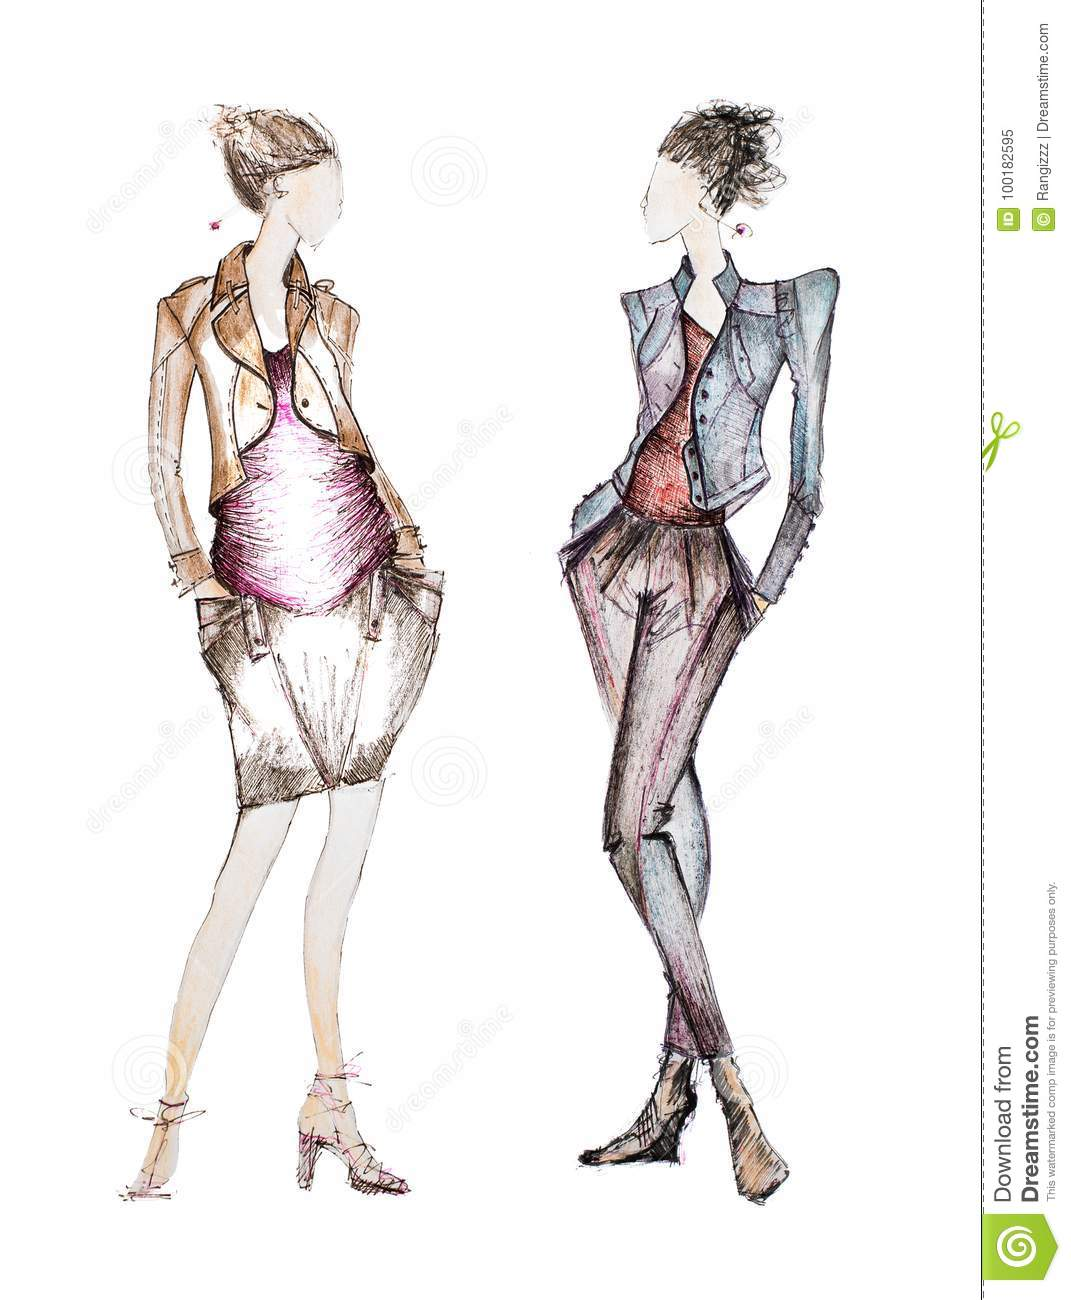 Professional Fashion Sketches Stock Illustration   Illustration of     Download Professional Fashion Sketches Stock Illustration   Illustration of  drawing  icon  100182595